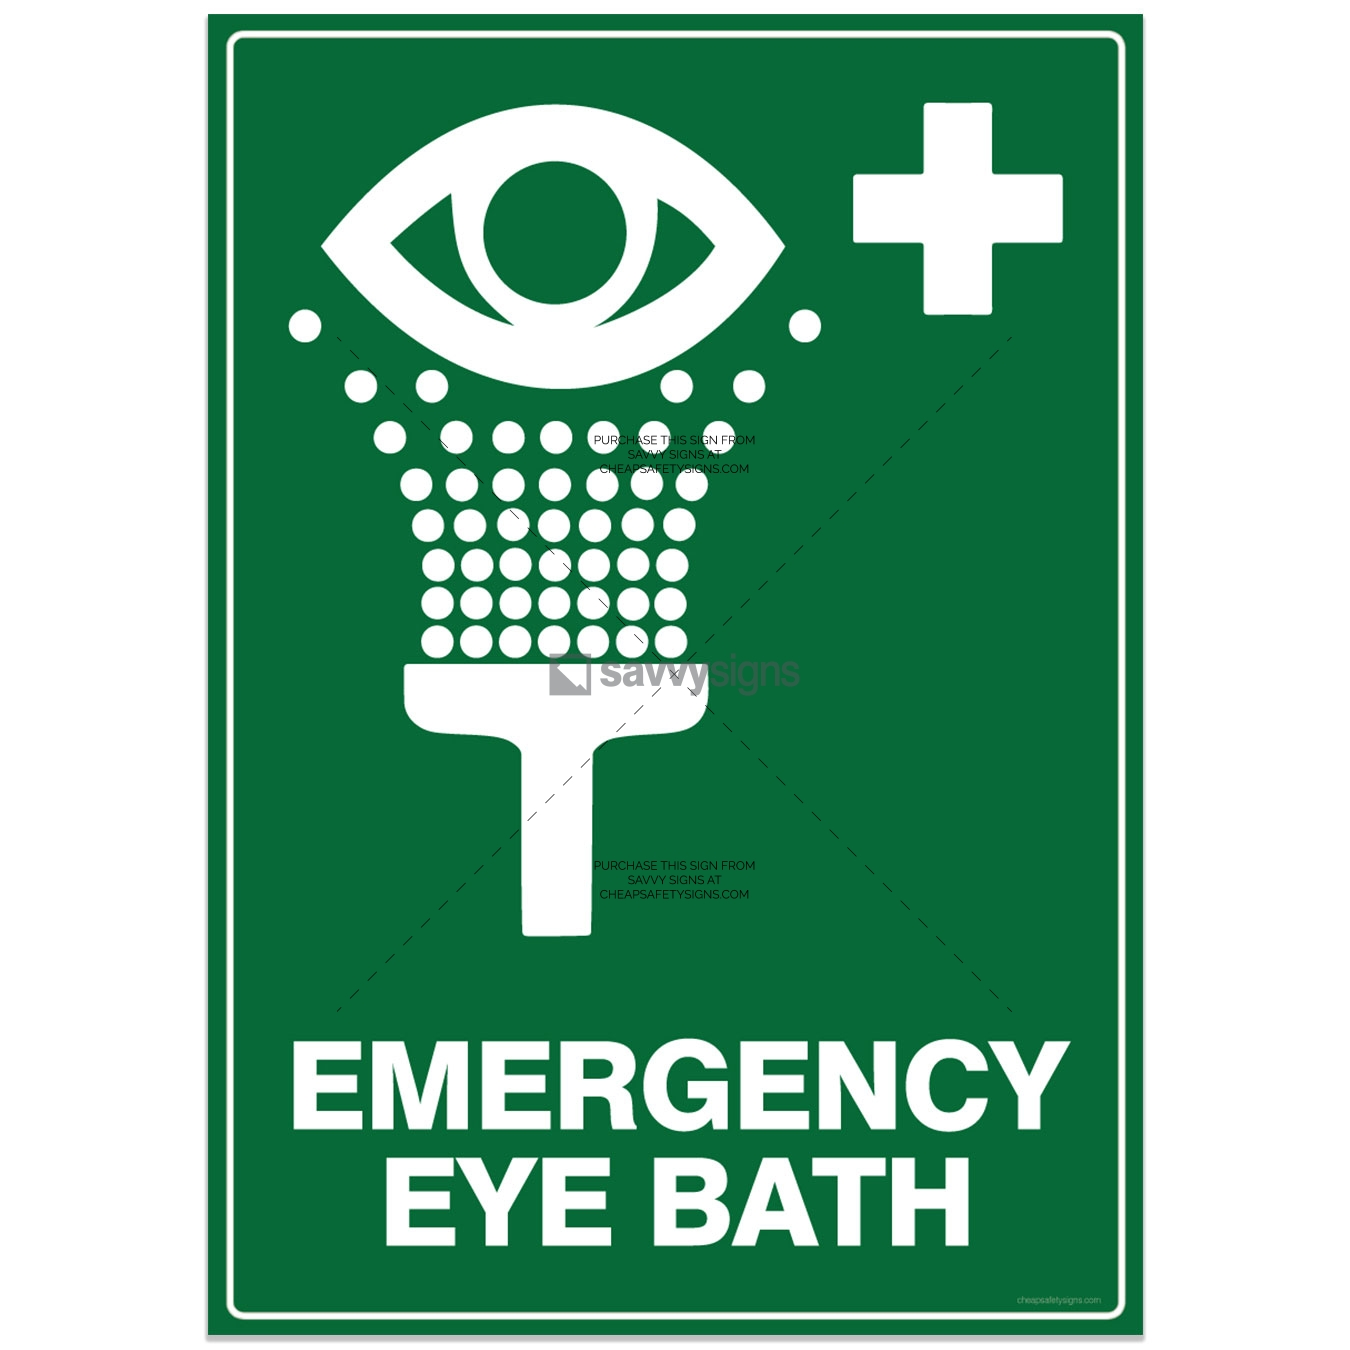 SSEME3050-EMERGENCY-Workplace-Safety-Signs_Savvy-Signs_v3